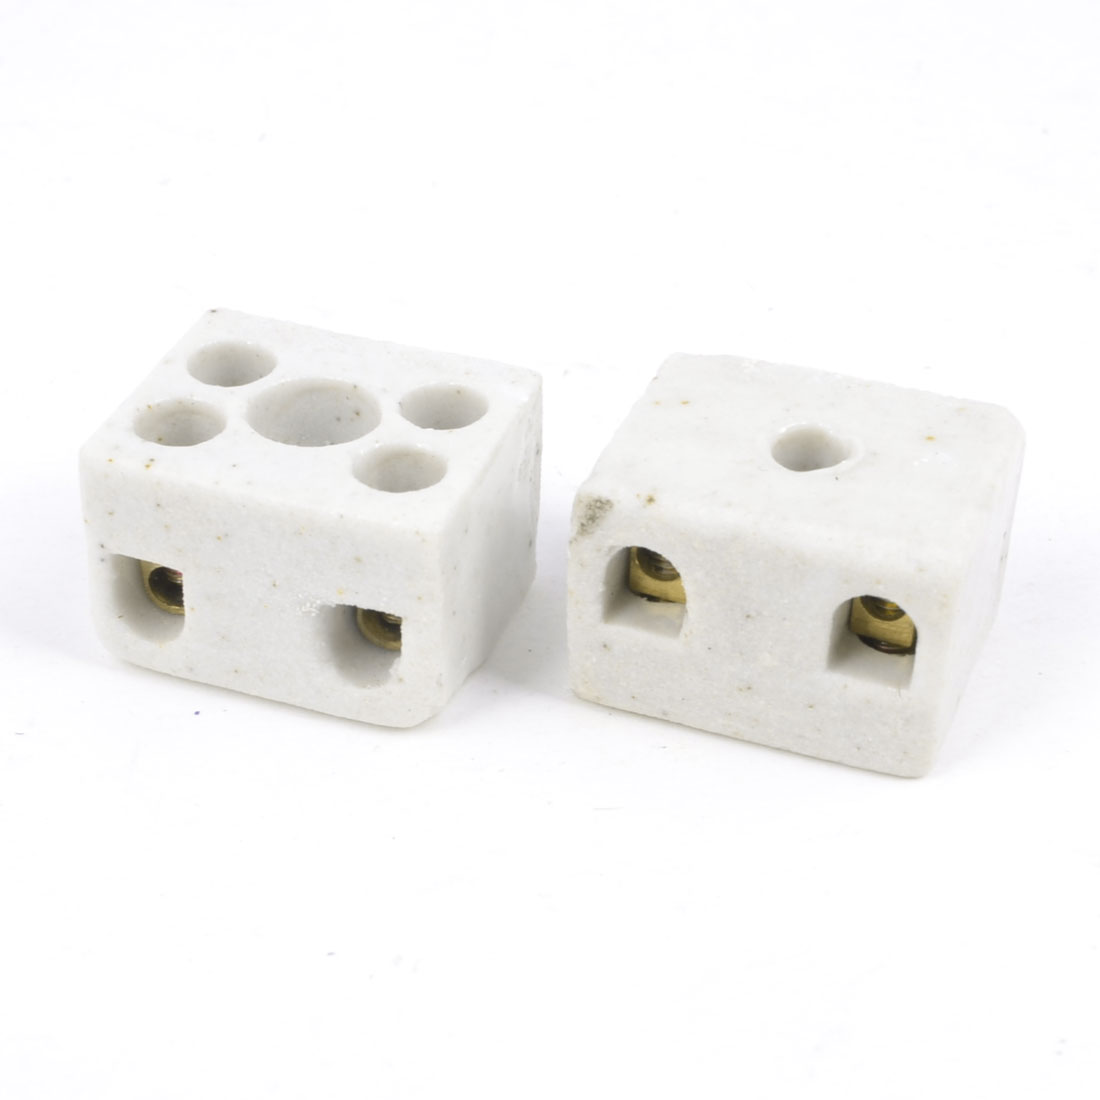 2pcs 5A White Insulation High Temp Ceramic Terminal Blocks 2W5H